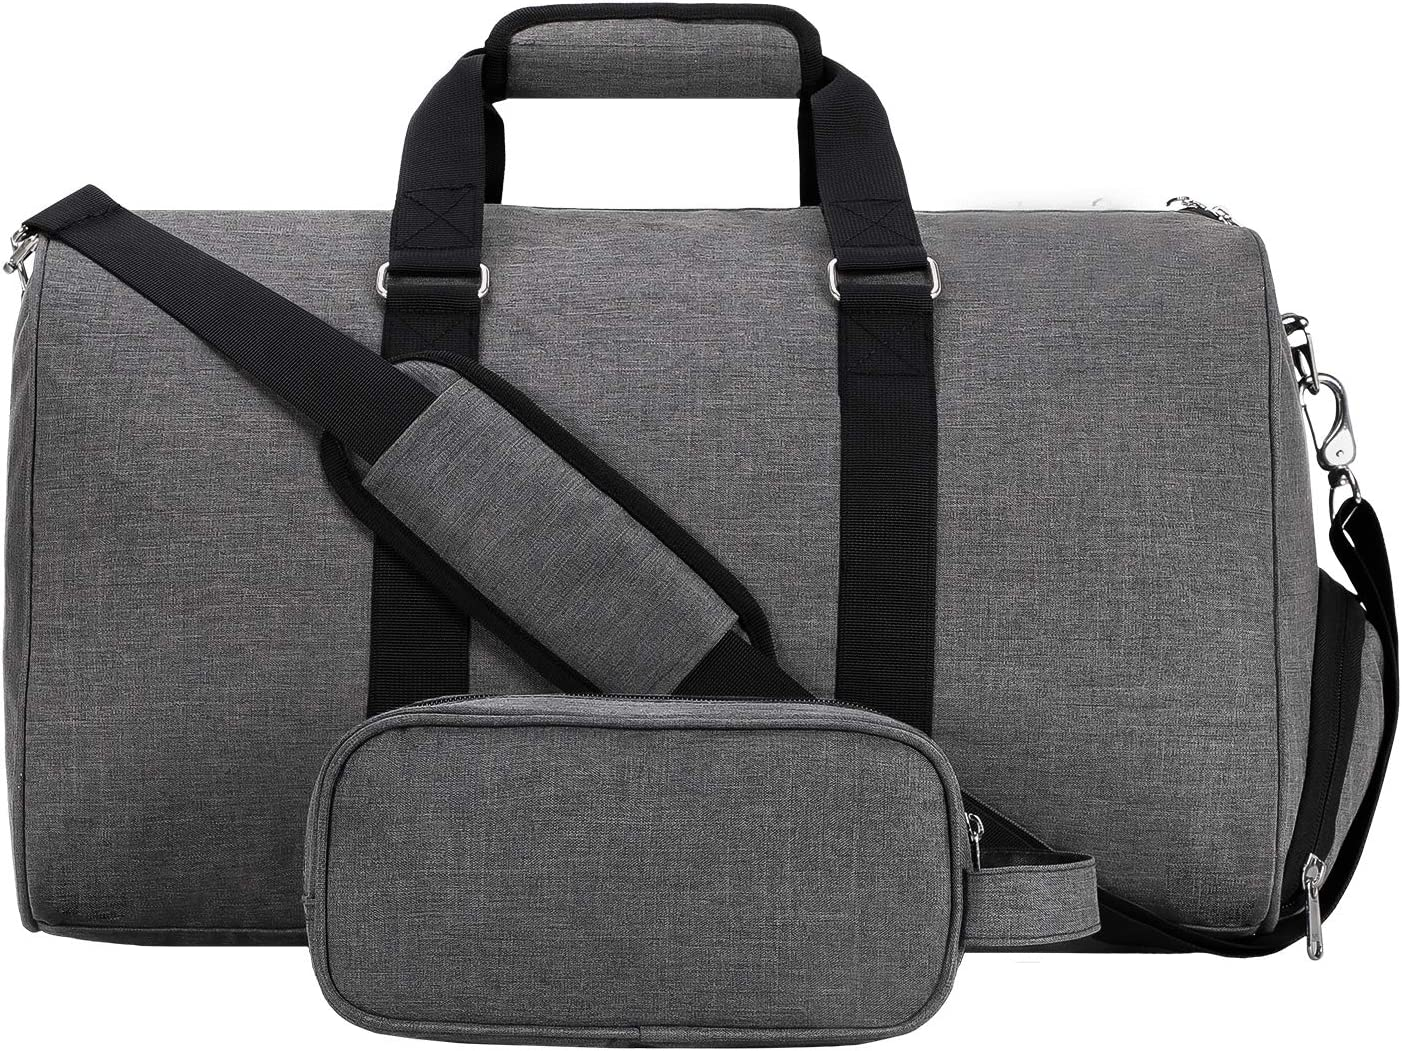 Amazon.com | MIER Sport Gym Duffel Bag with Shoes Compartment for Women Men, Weekender Overnight Duffel Travel Luggage Bags with Toiletry Bag 20 Inches Light Grey | Sports Duffels